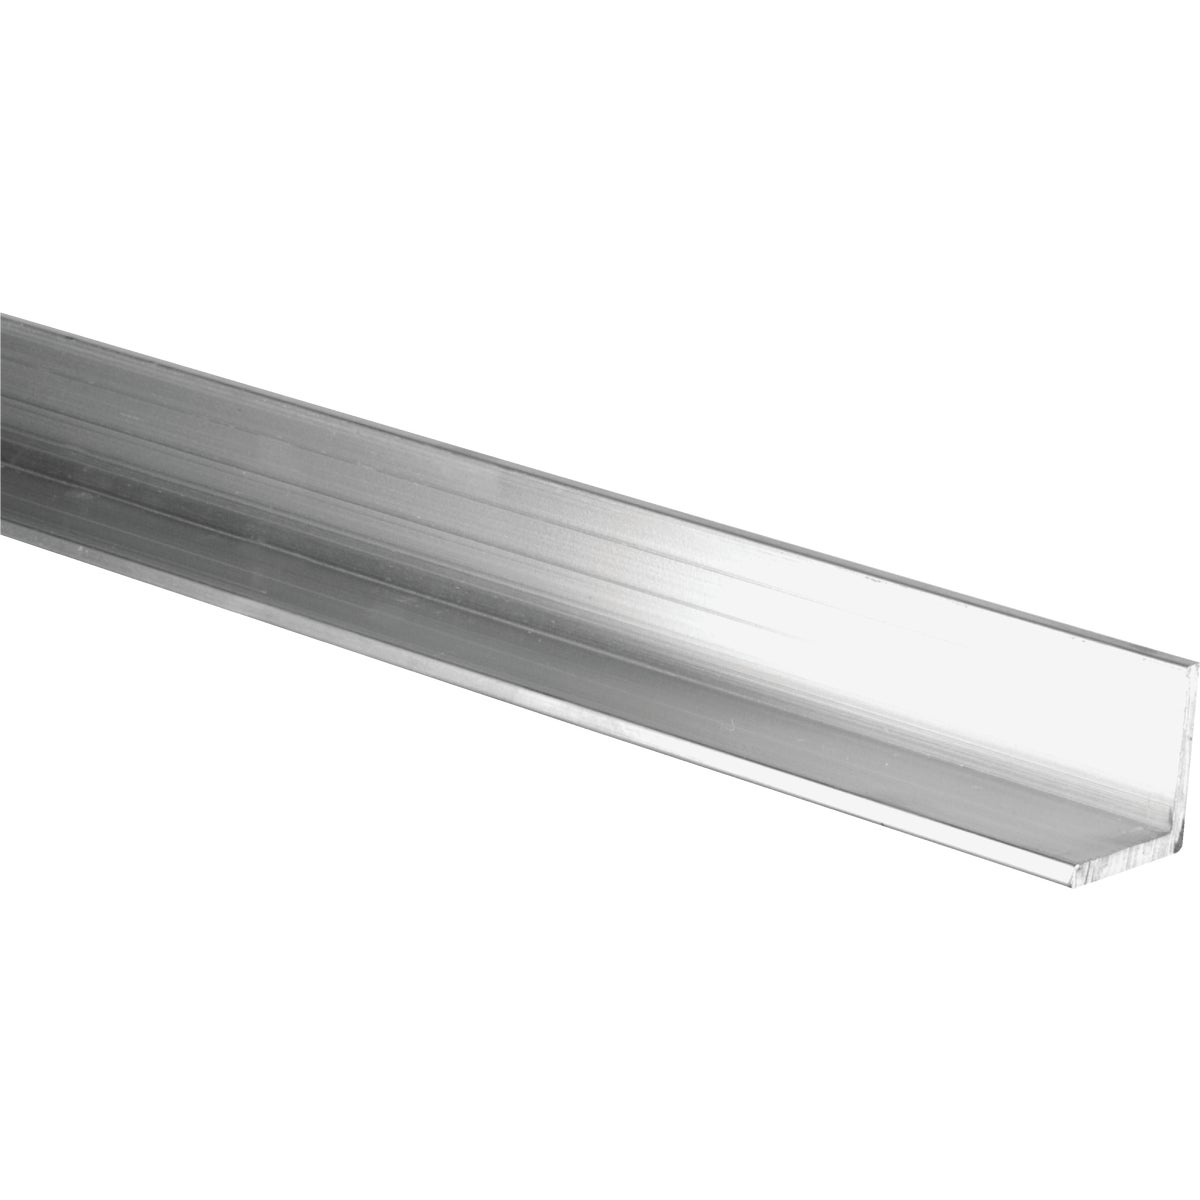 1/16X3/4X3' ALUM ANGLE - N342063 by National Mfg Co